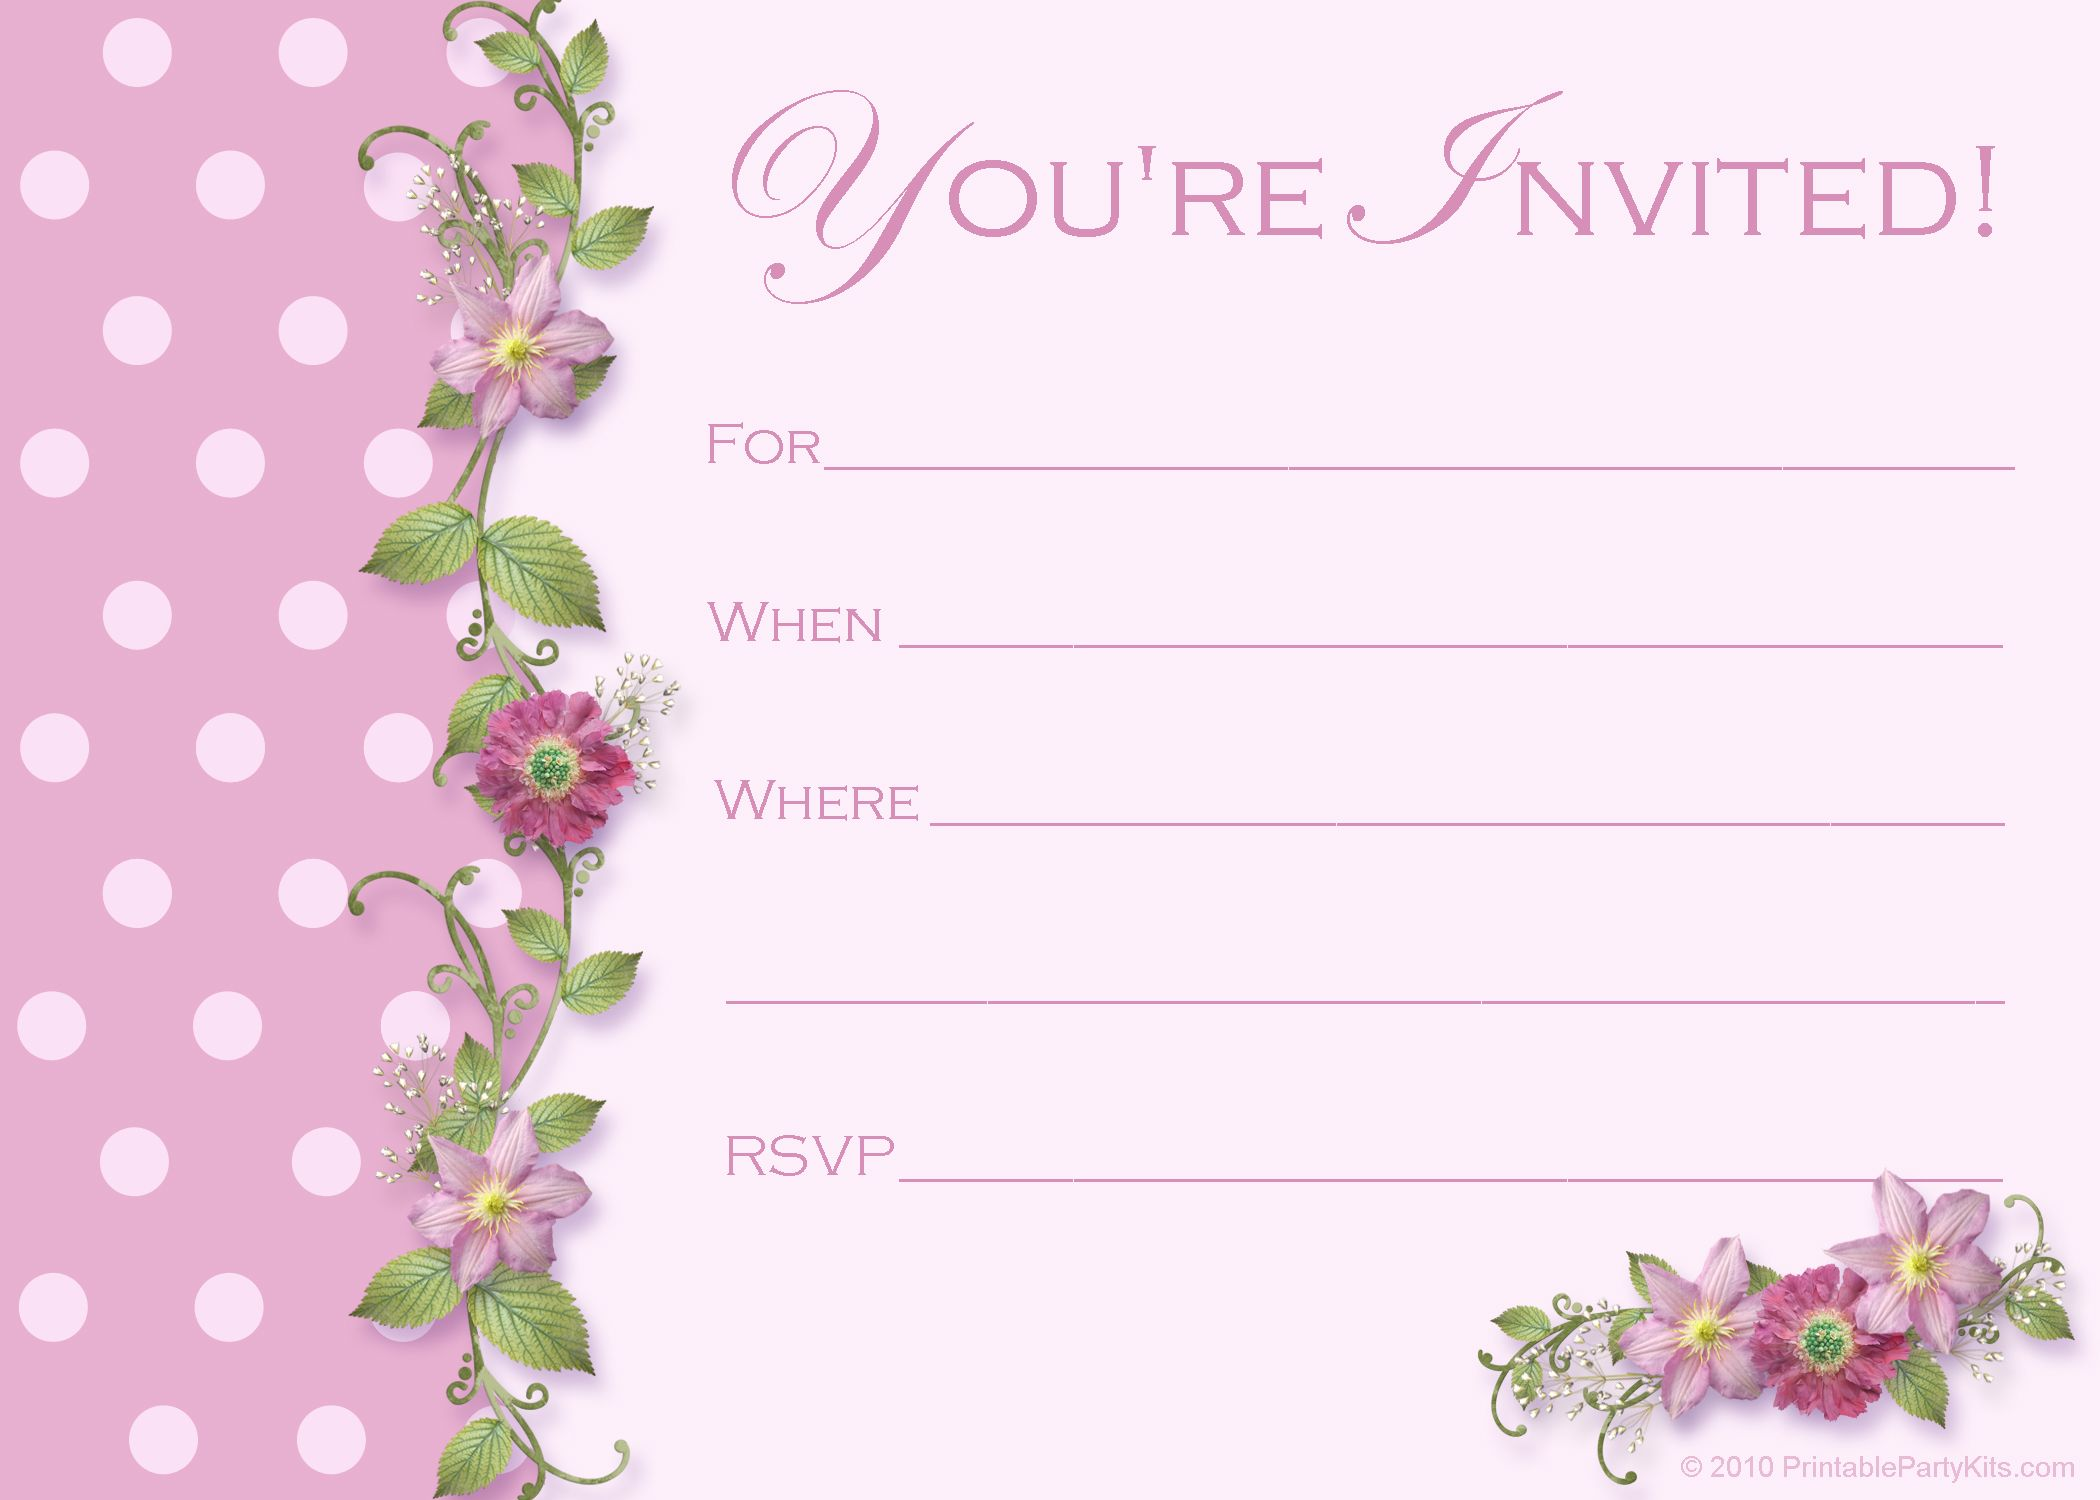 Unique Birthday Invitation Templates Ideas On Pinterest Free - Birthday party invitation card maker free